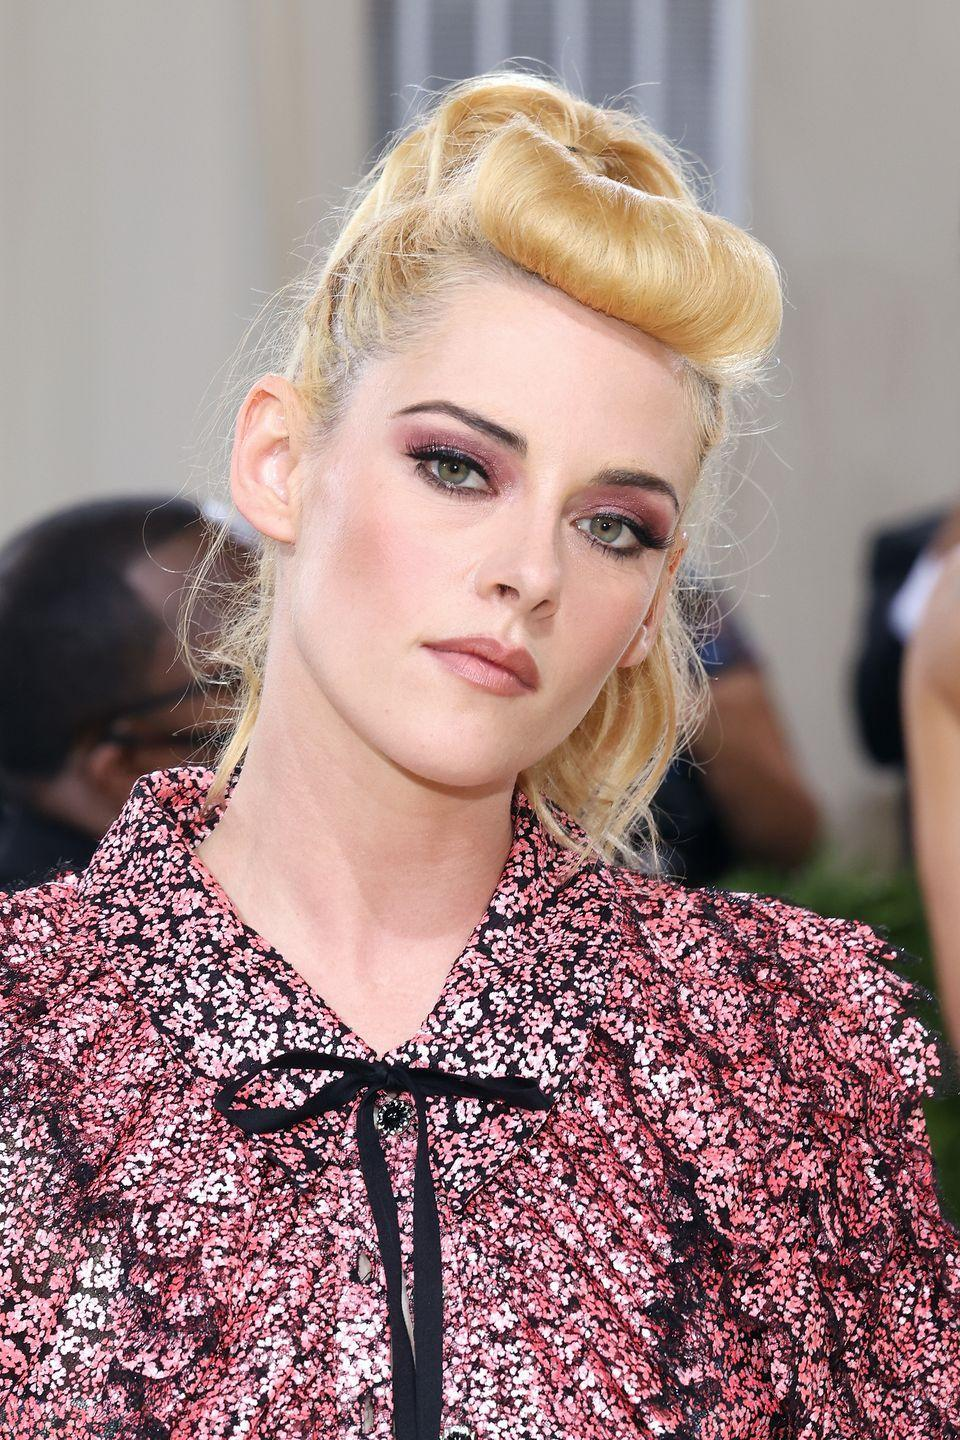 <p>Kristen Stewart nailed Fifties pin-up vibes with her 'bumper bangs' and high ponytail. Matching her dress, her make-up was a pink feat by Jillian Dempsey, who also gave Stewart a sharp arched brow and chiseled cheeks.</p>